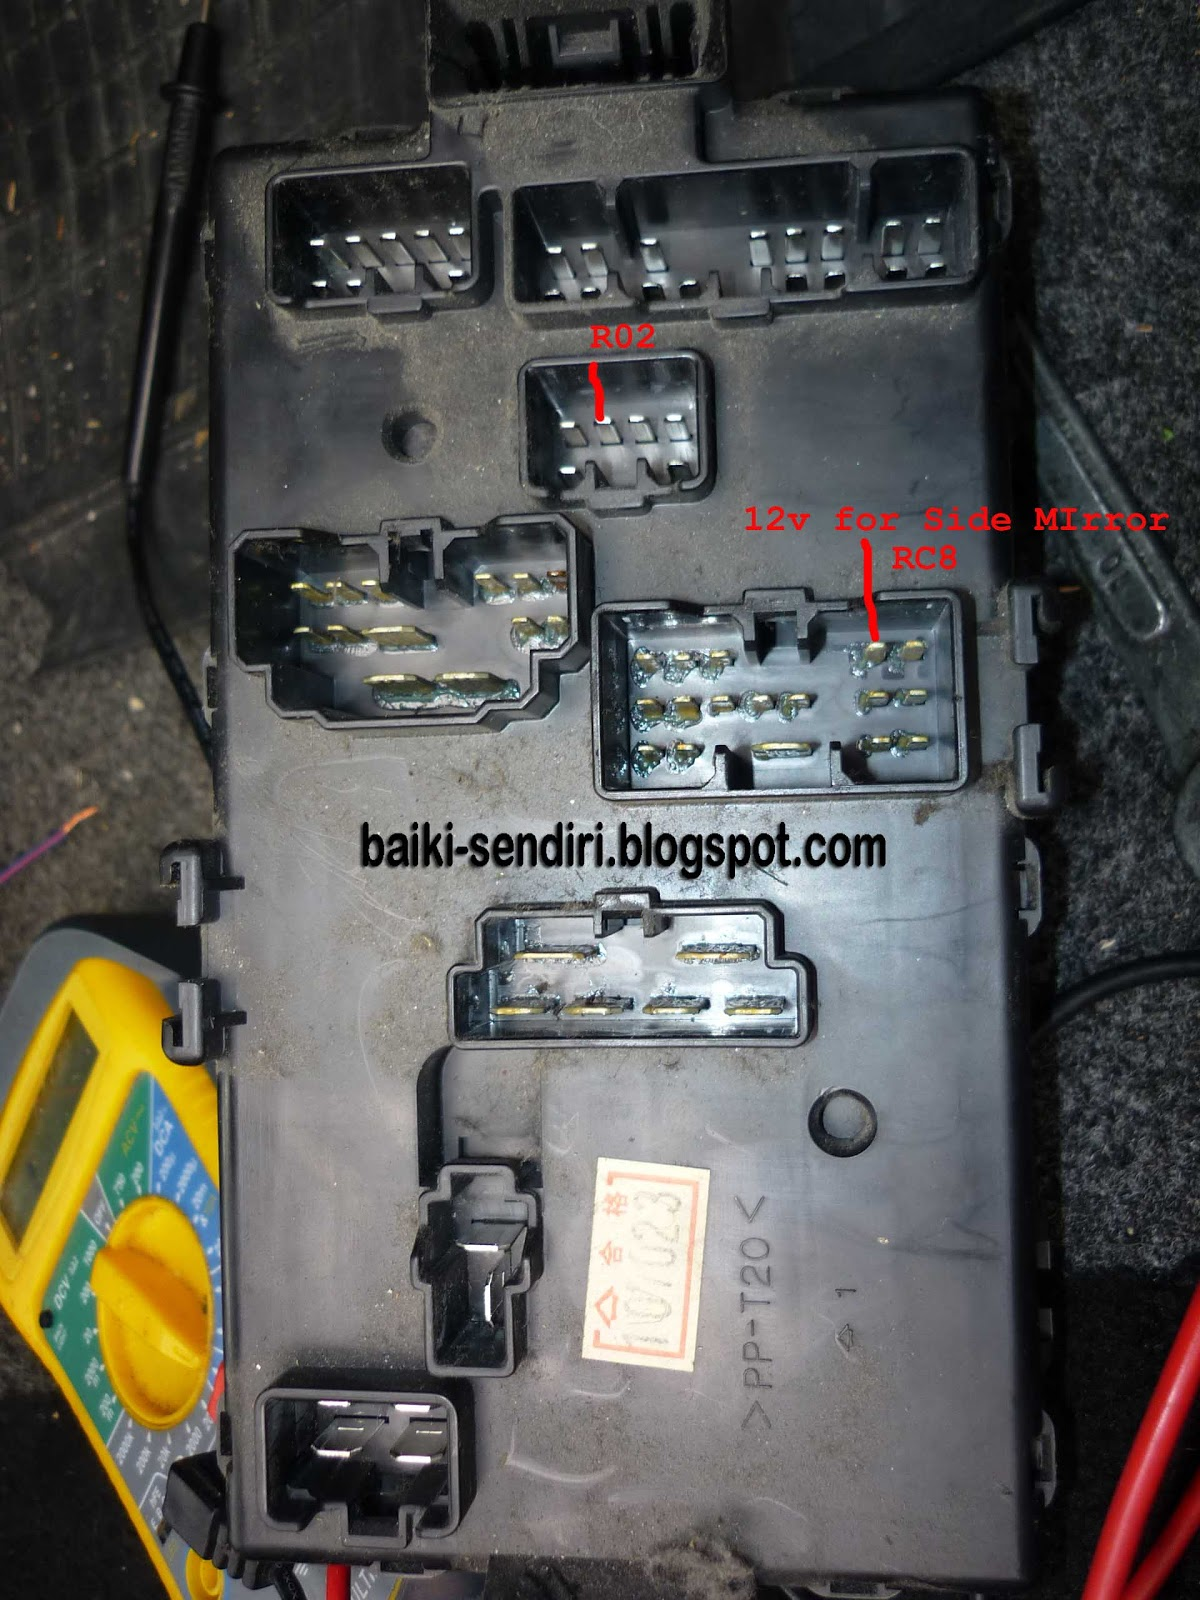 Wiring Install Switch For 220v Wiring Diagram Wiring Diagram Wiring A